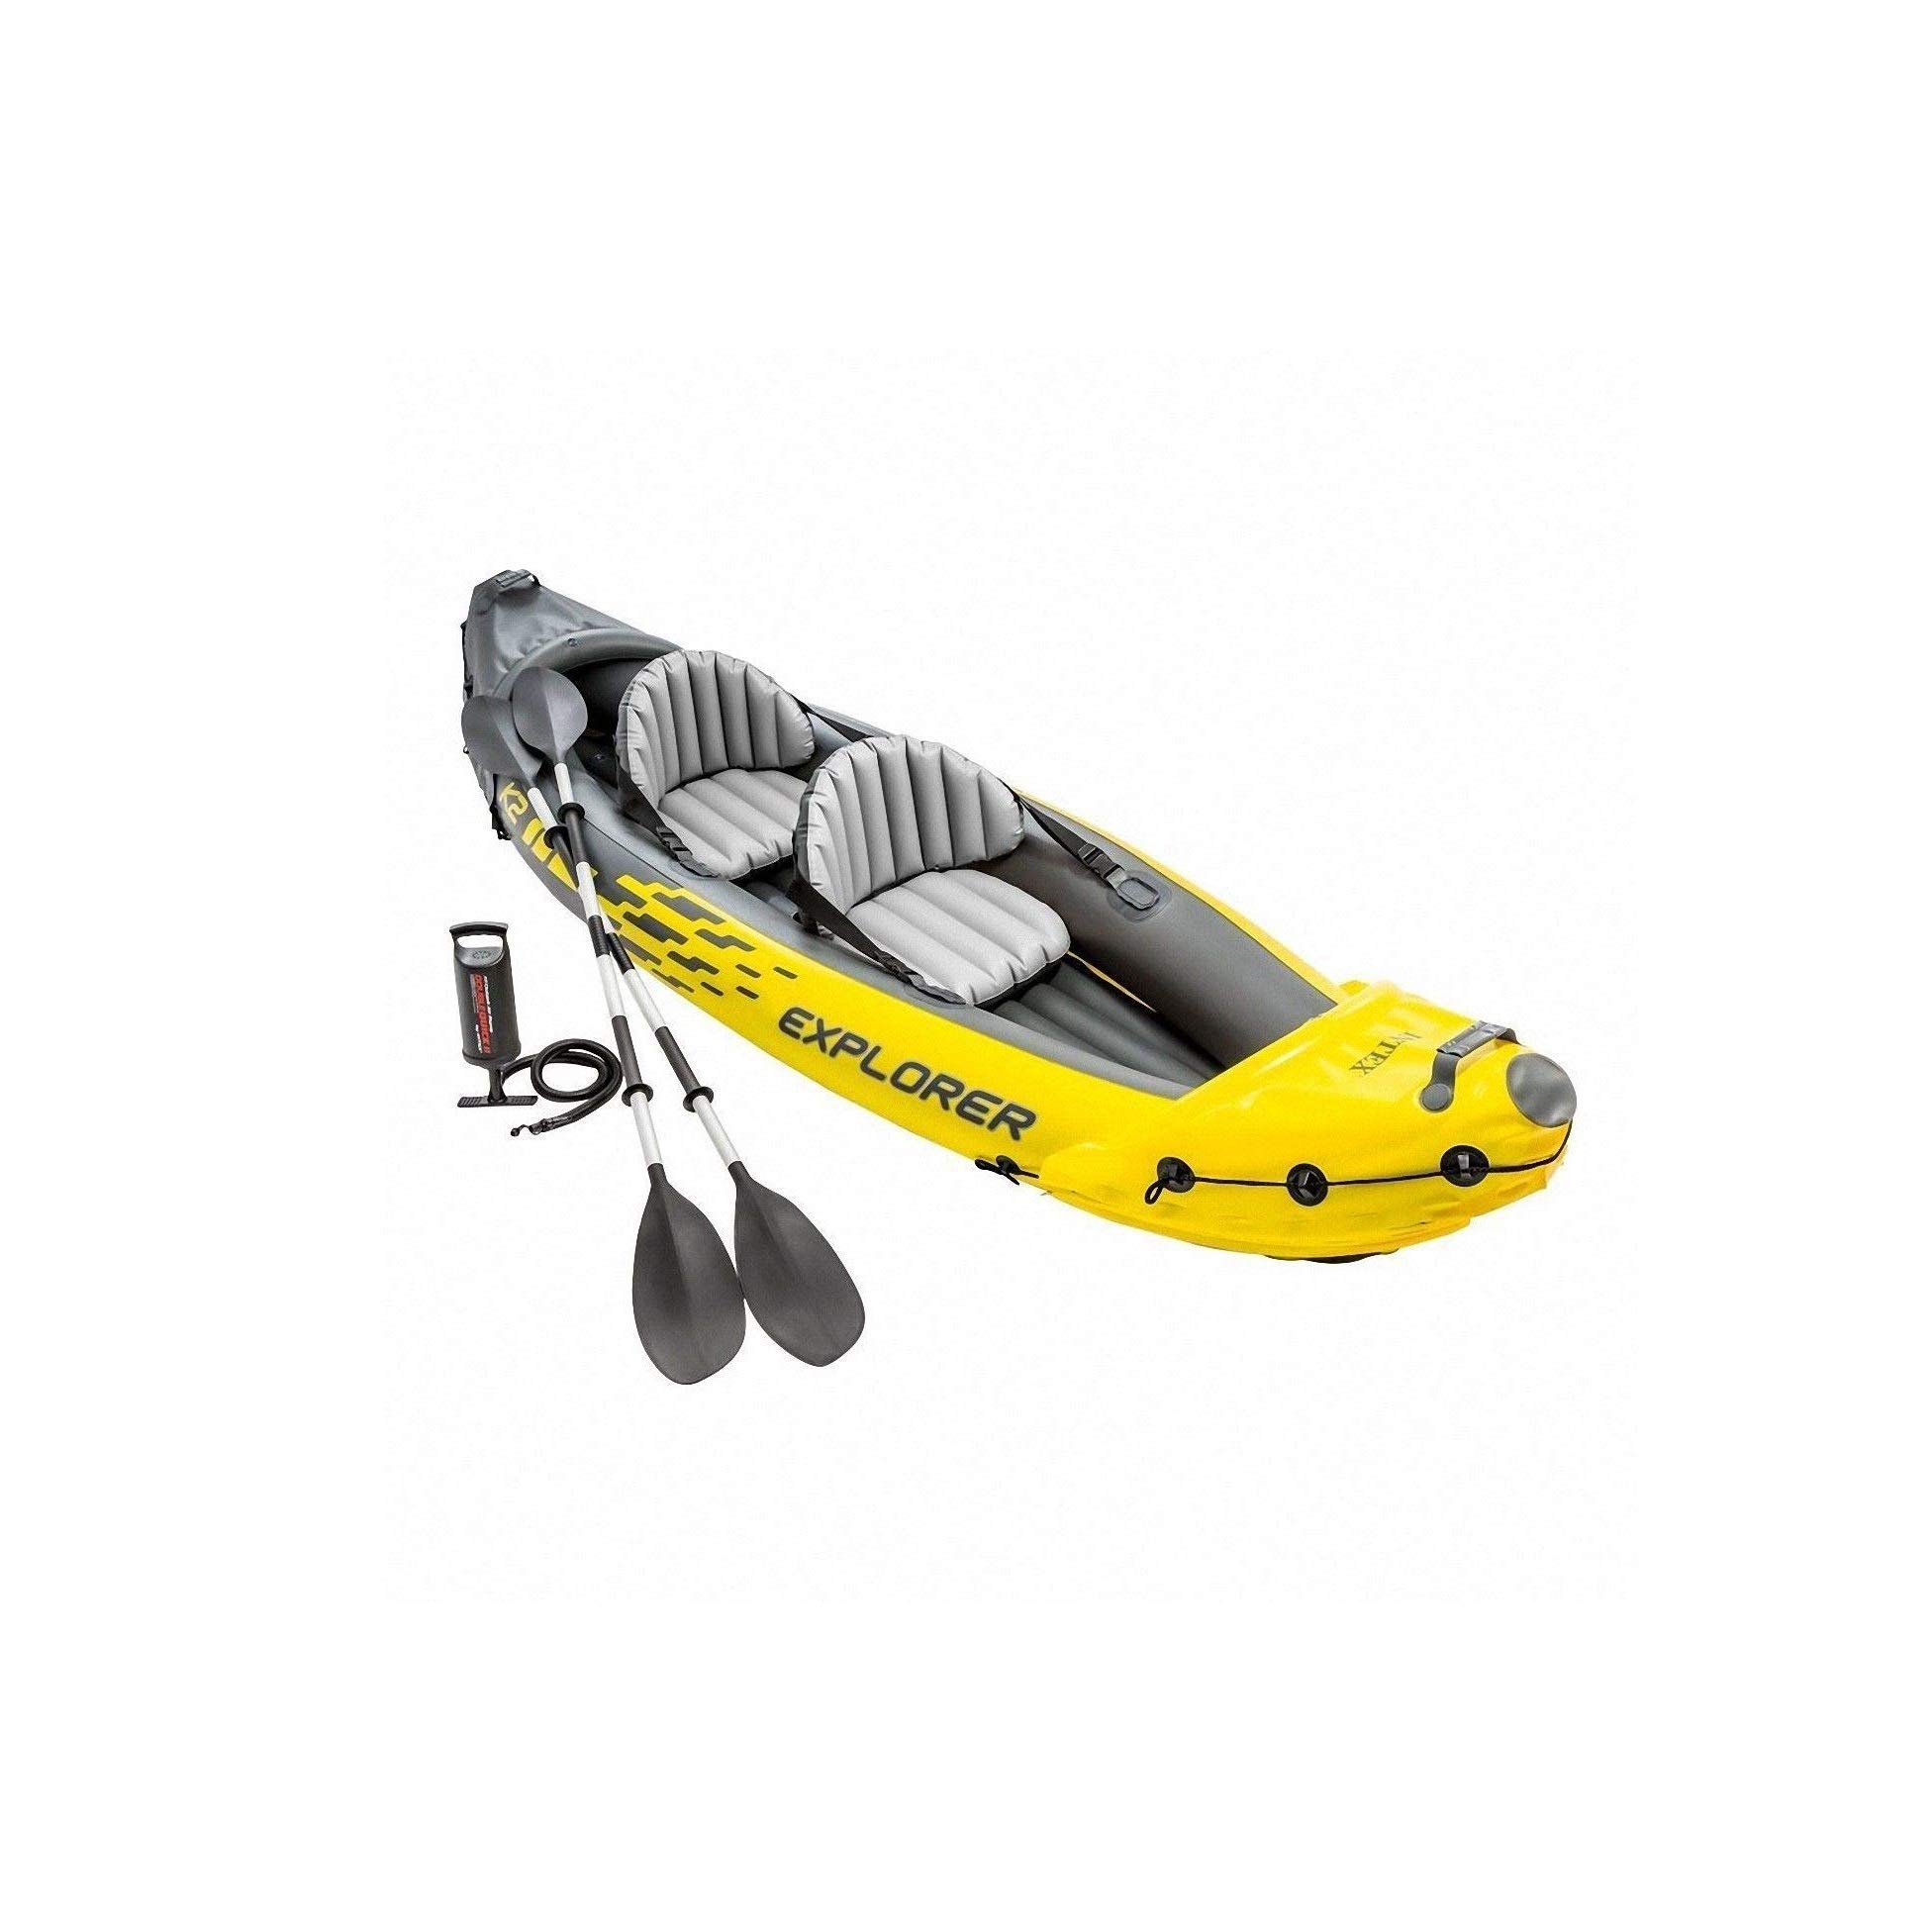 Intex Explorer K2 Yellow 2 Person Inflatable Kayak with Aluminum Oars & Air Pump (Renewed) by Intex